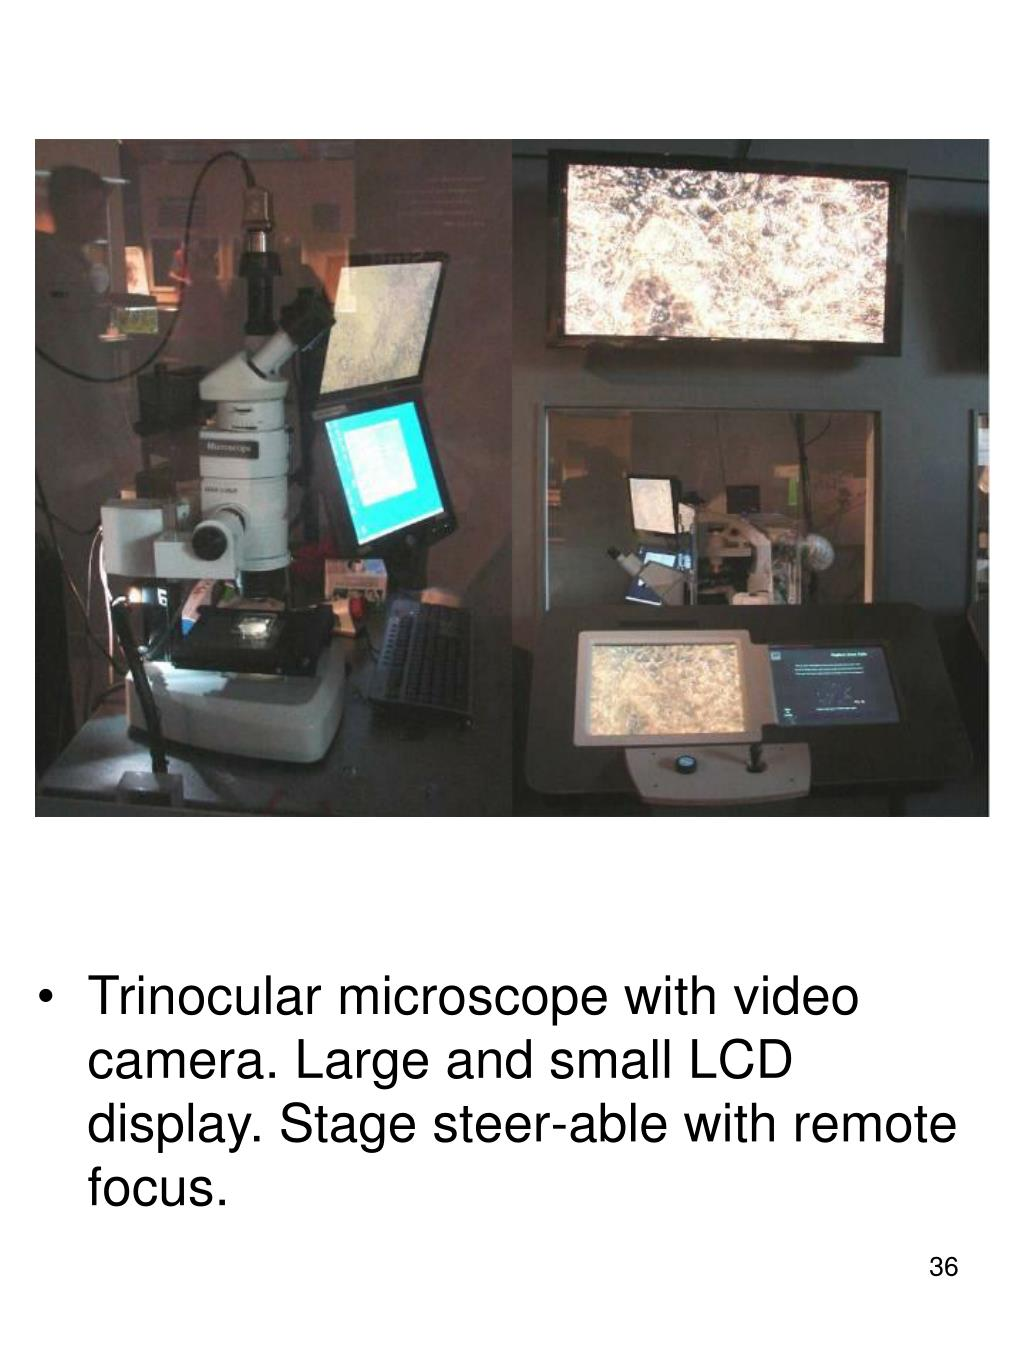 Trinocular microscope with video camera. Large and small LCD display. Stage steer-able with remote focus.